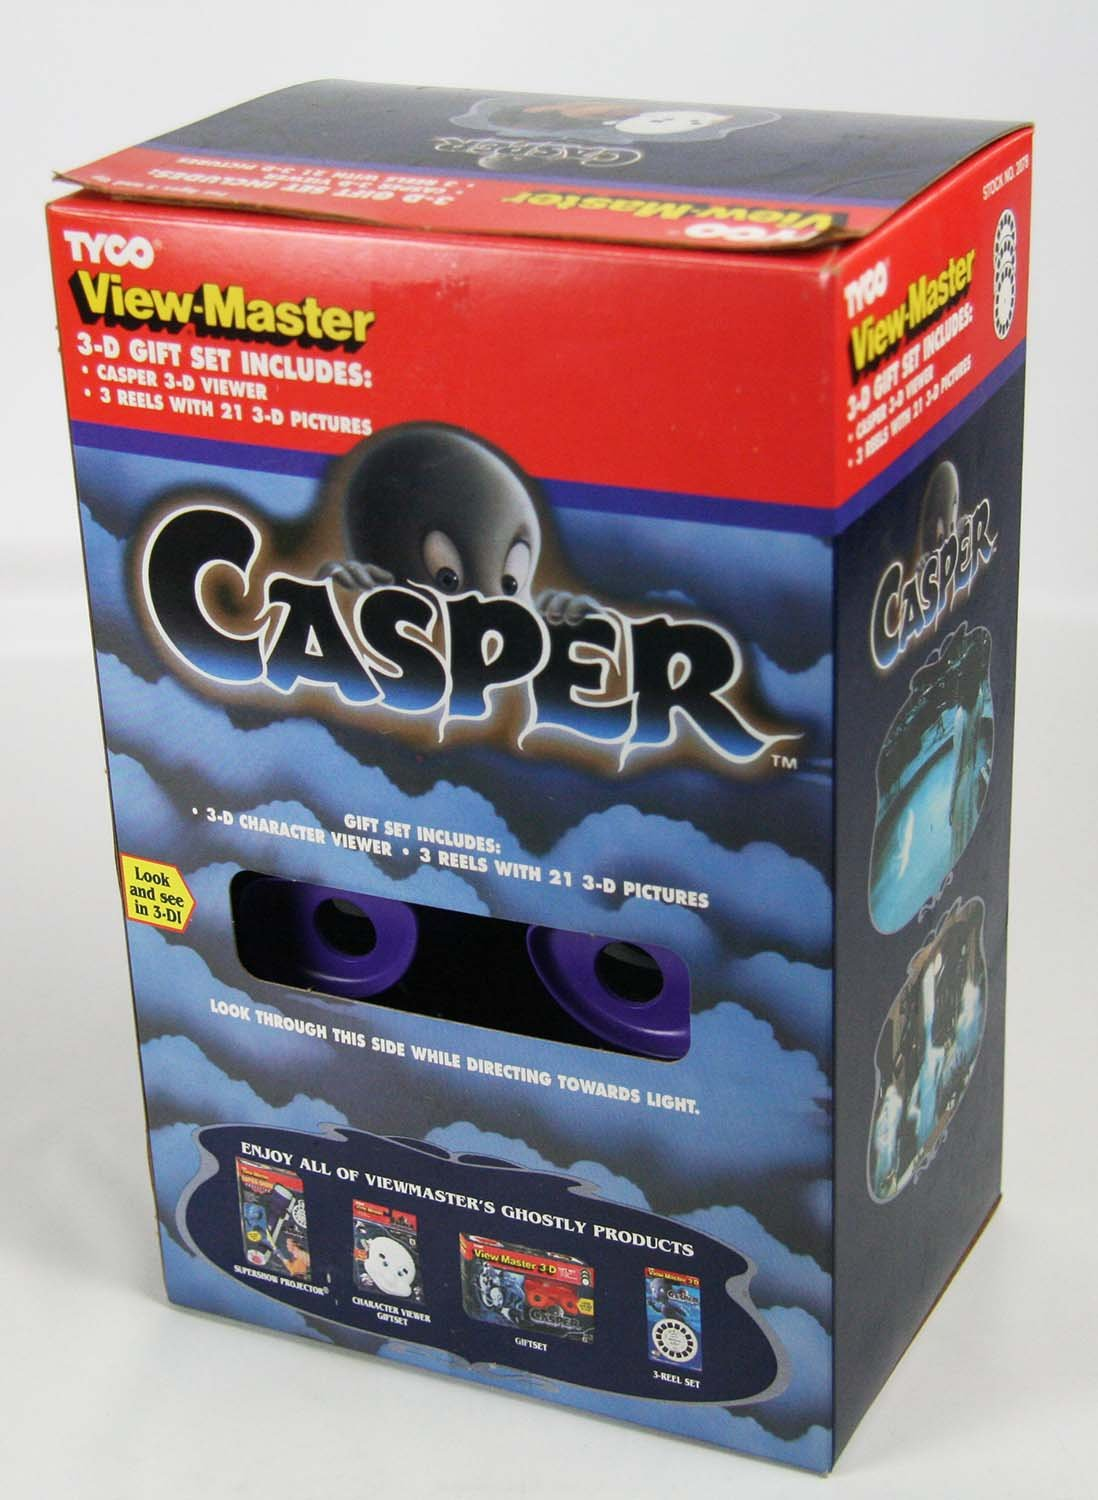 ViewMaster - Casper Character Viewer & 3 reels from 1995 movie - NEW by 3Dstereo Gift Set (Image #1)